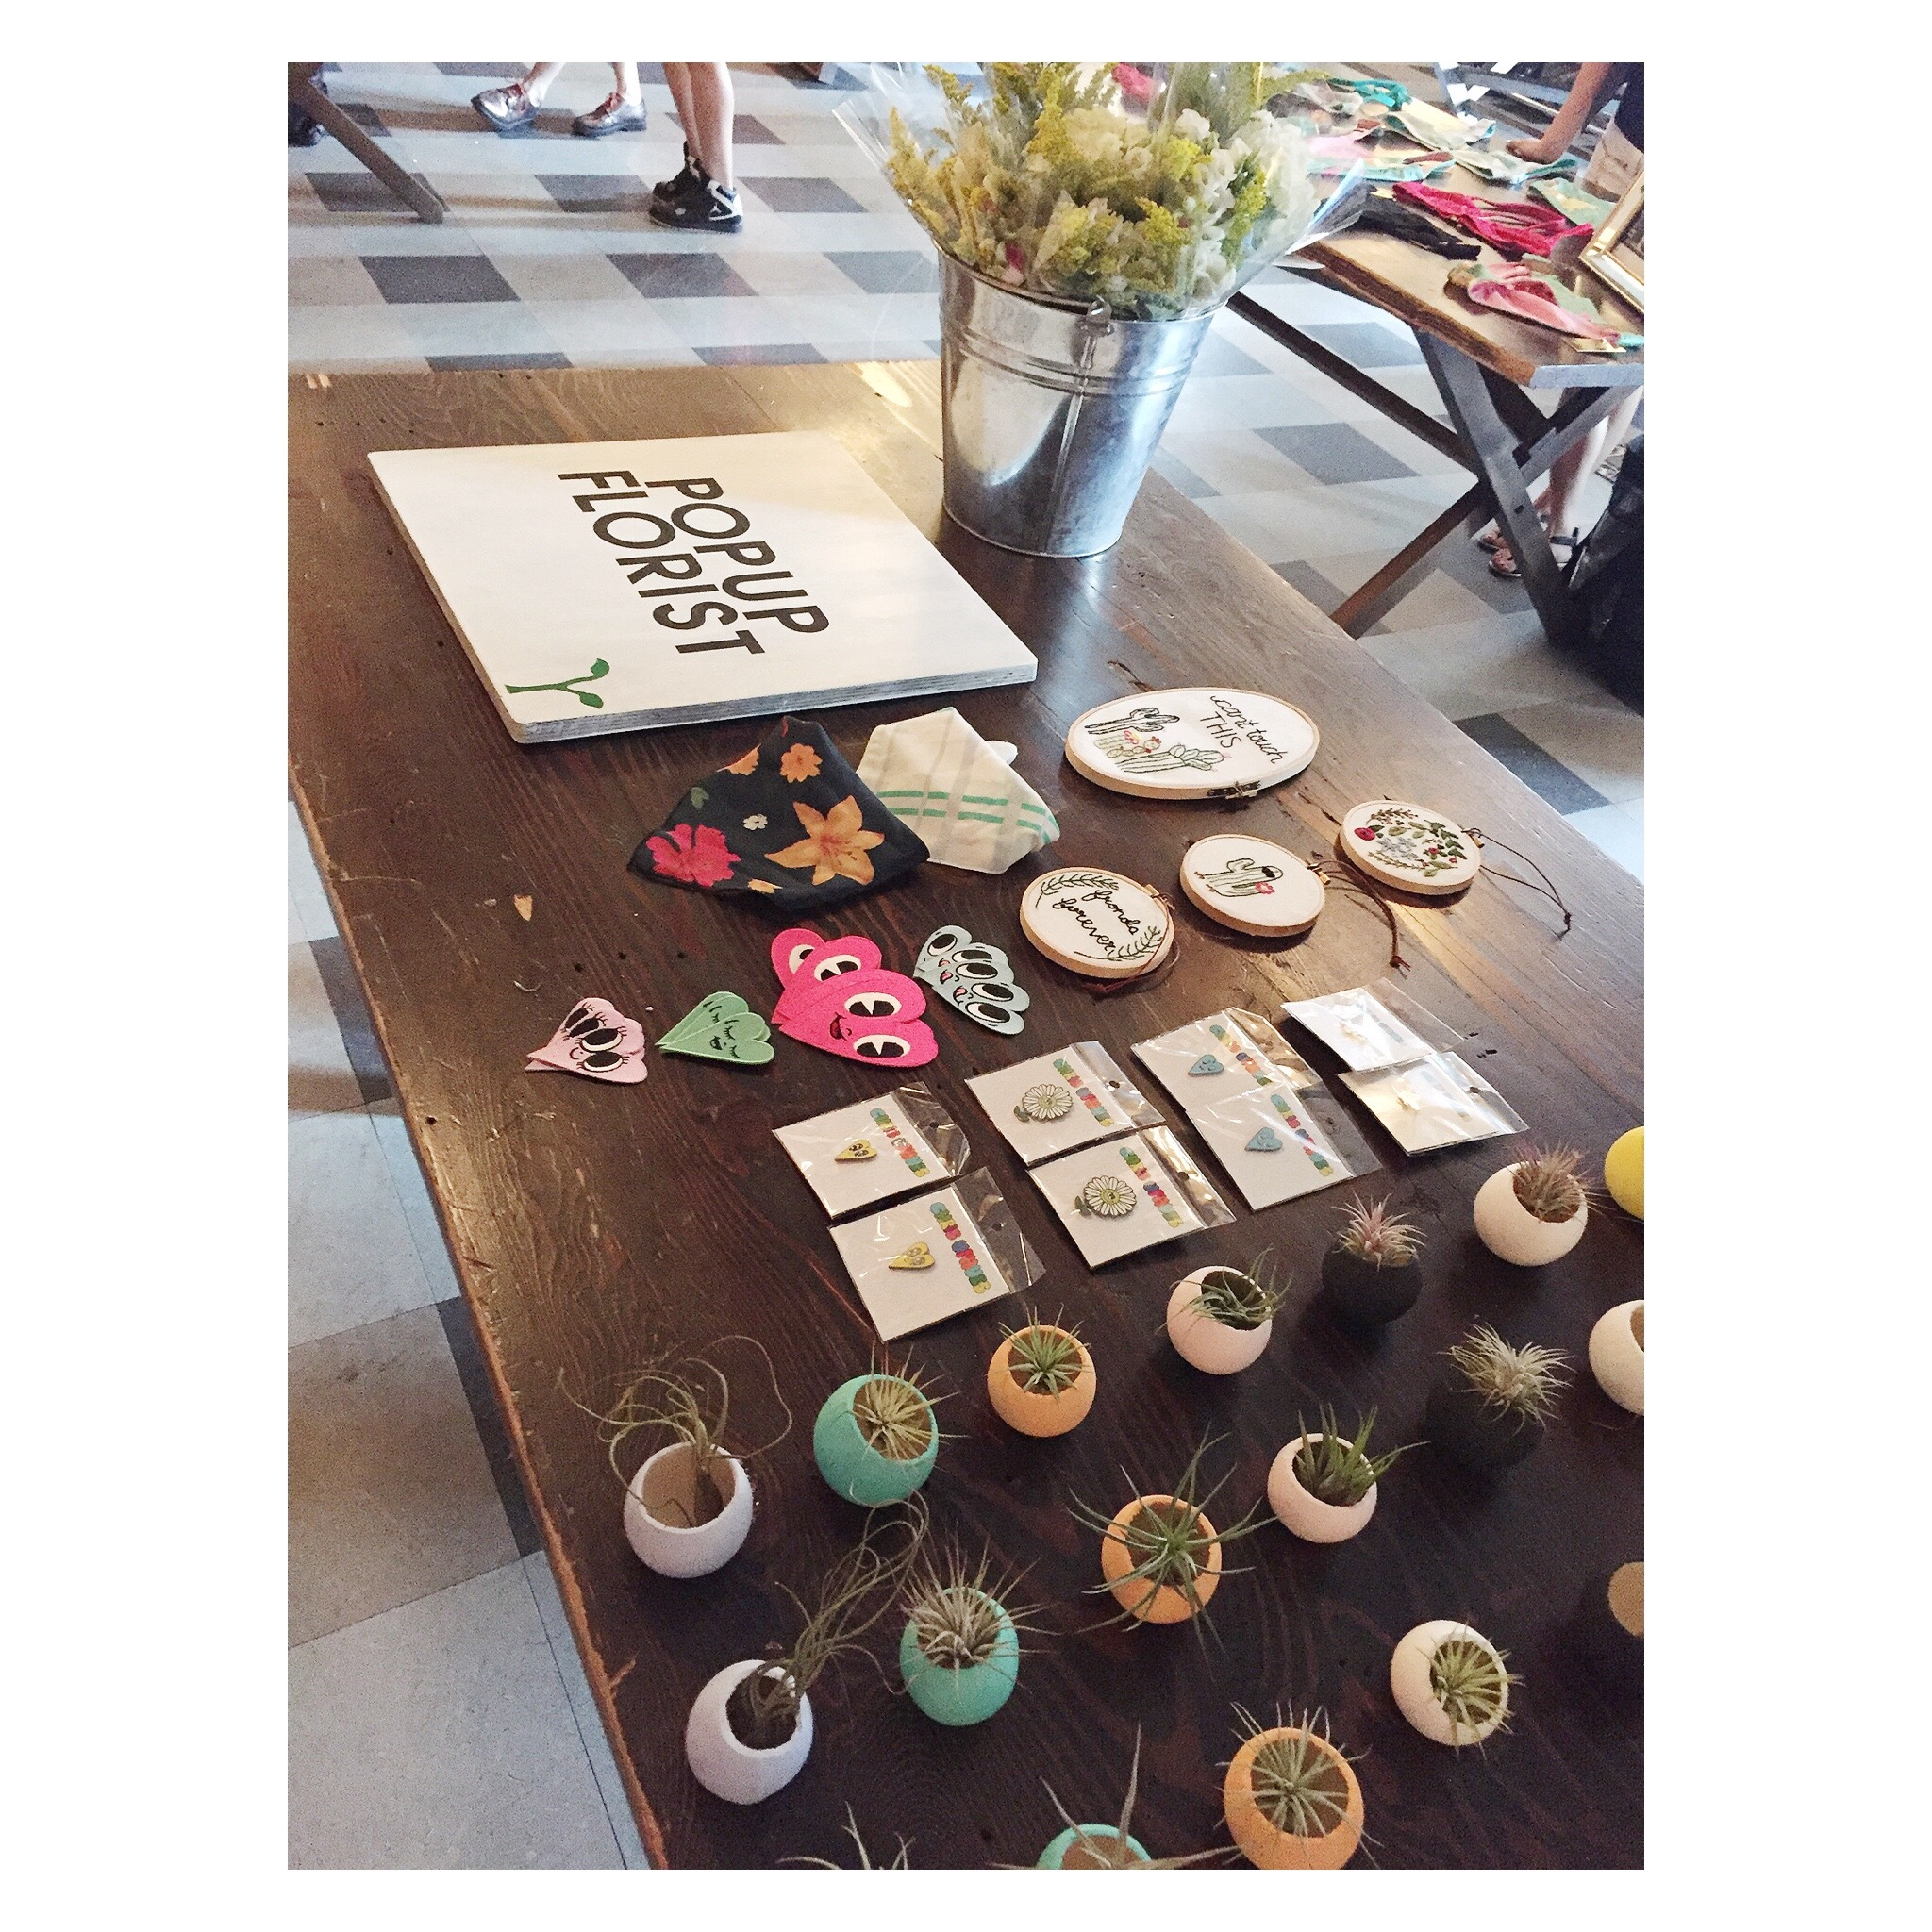 Soho House Summer POPUP Market, June 2016